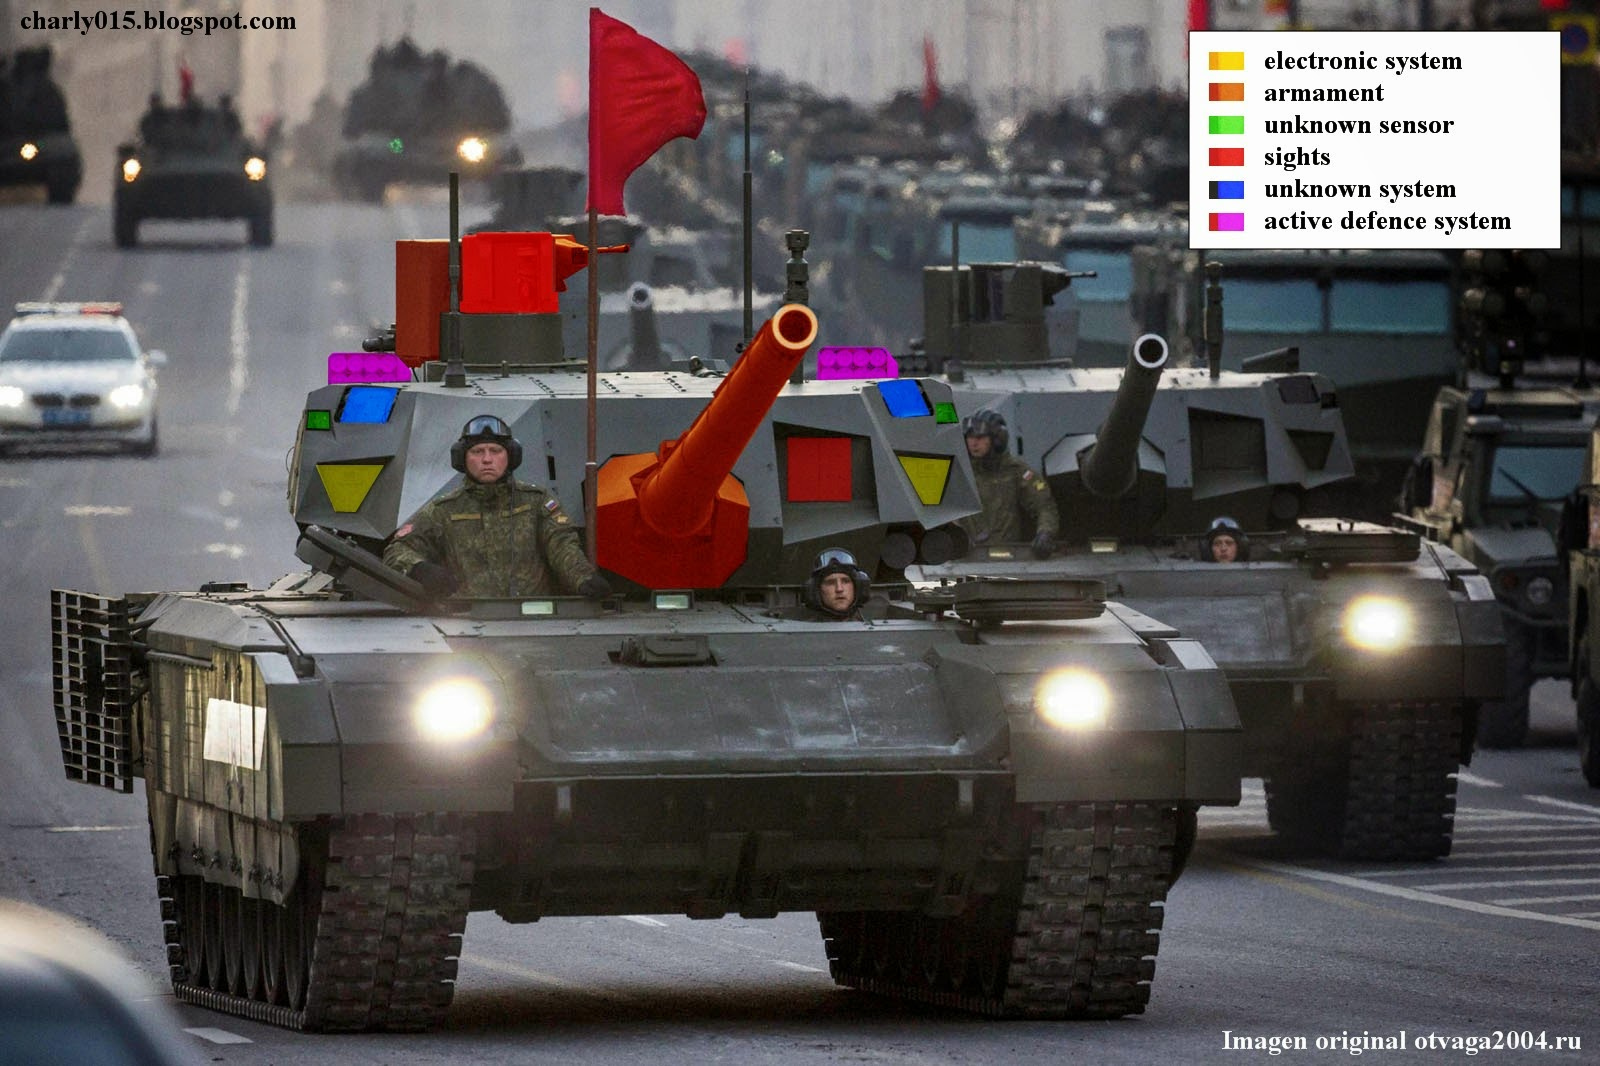 [Official] Armata Discussion thread #2 - Page 32 Armata%2Bequipos%2By%2Bsensores%2Bingl%C3%A9s